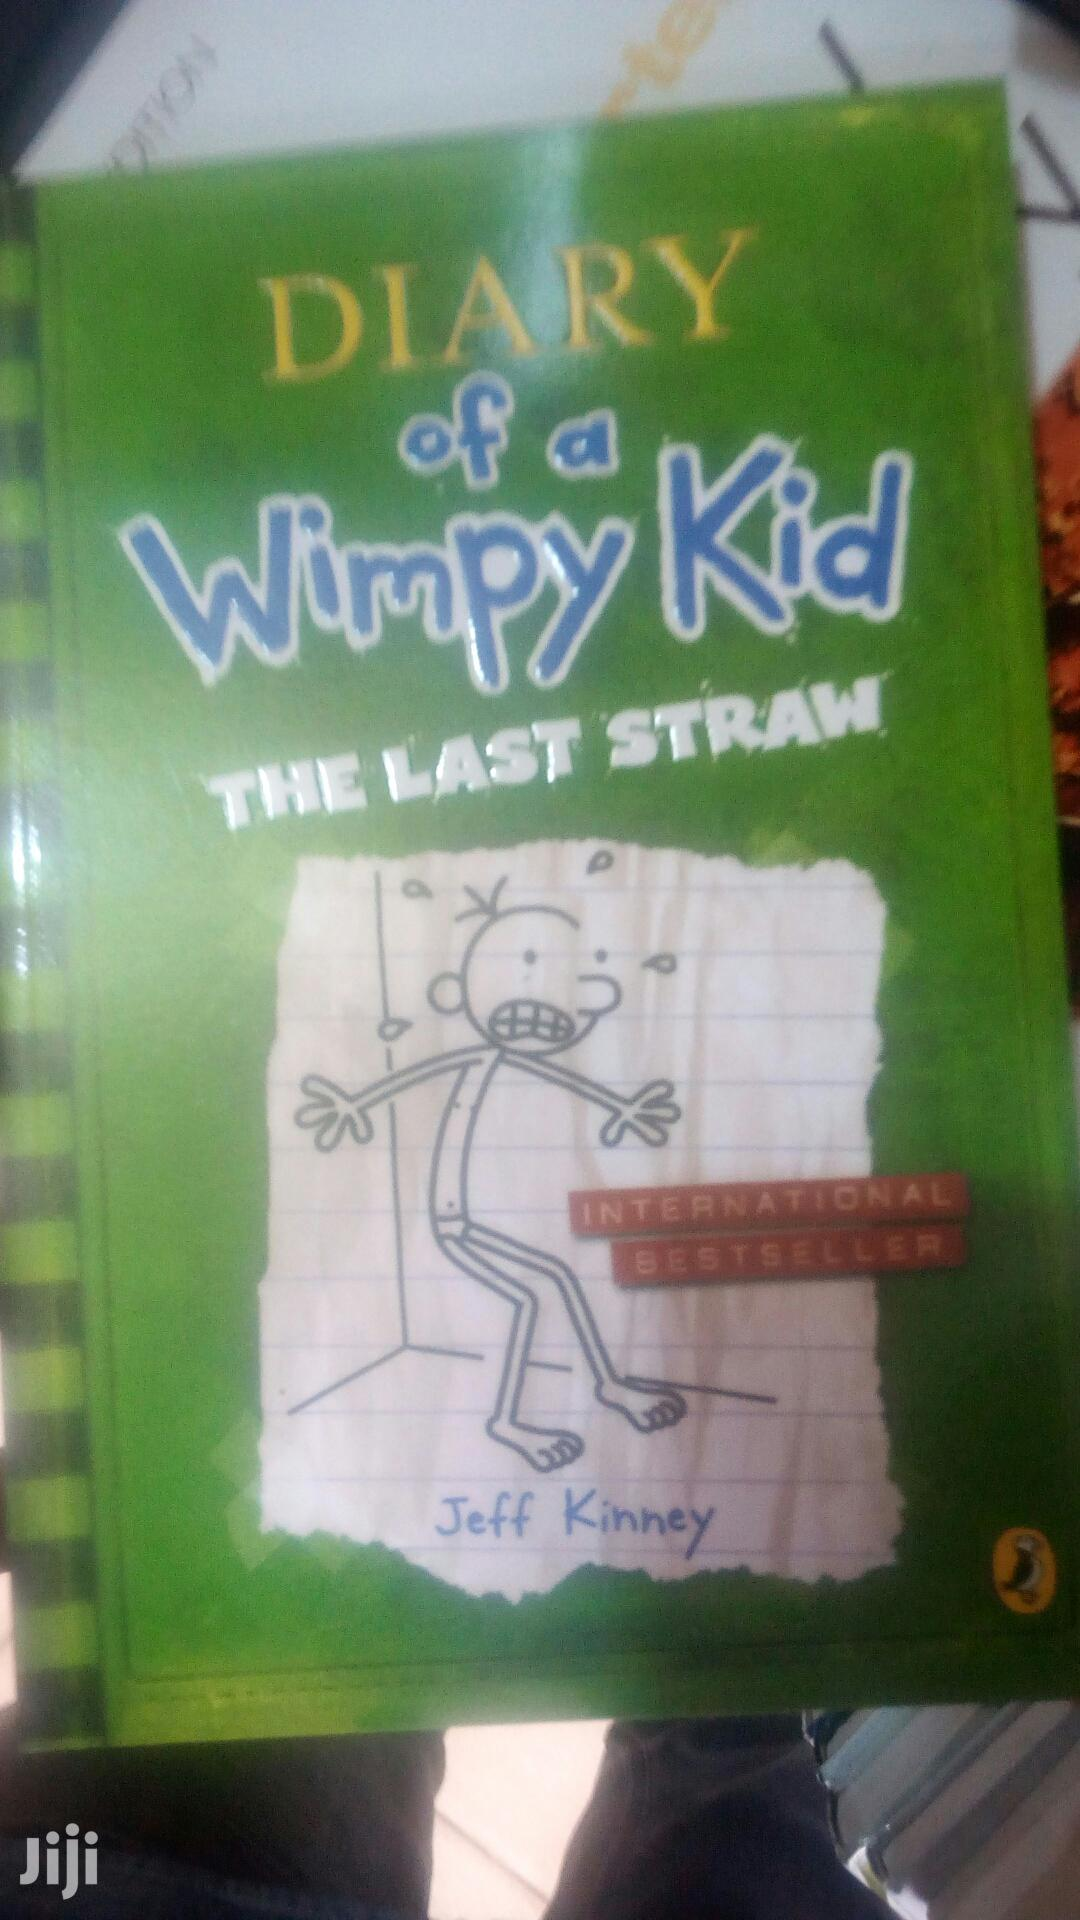 Diary Of A Wimpy Kid | Books & Games for sale in Yaba, Lagos State, Nigeria